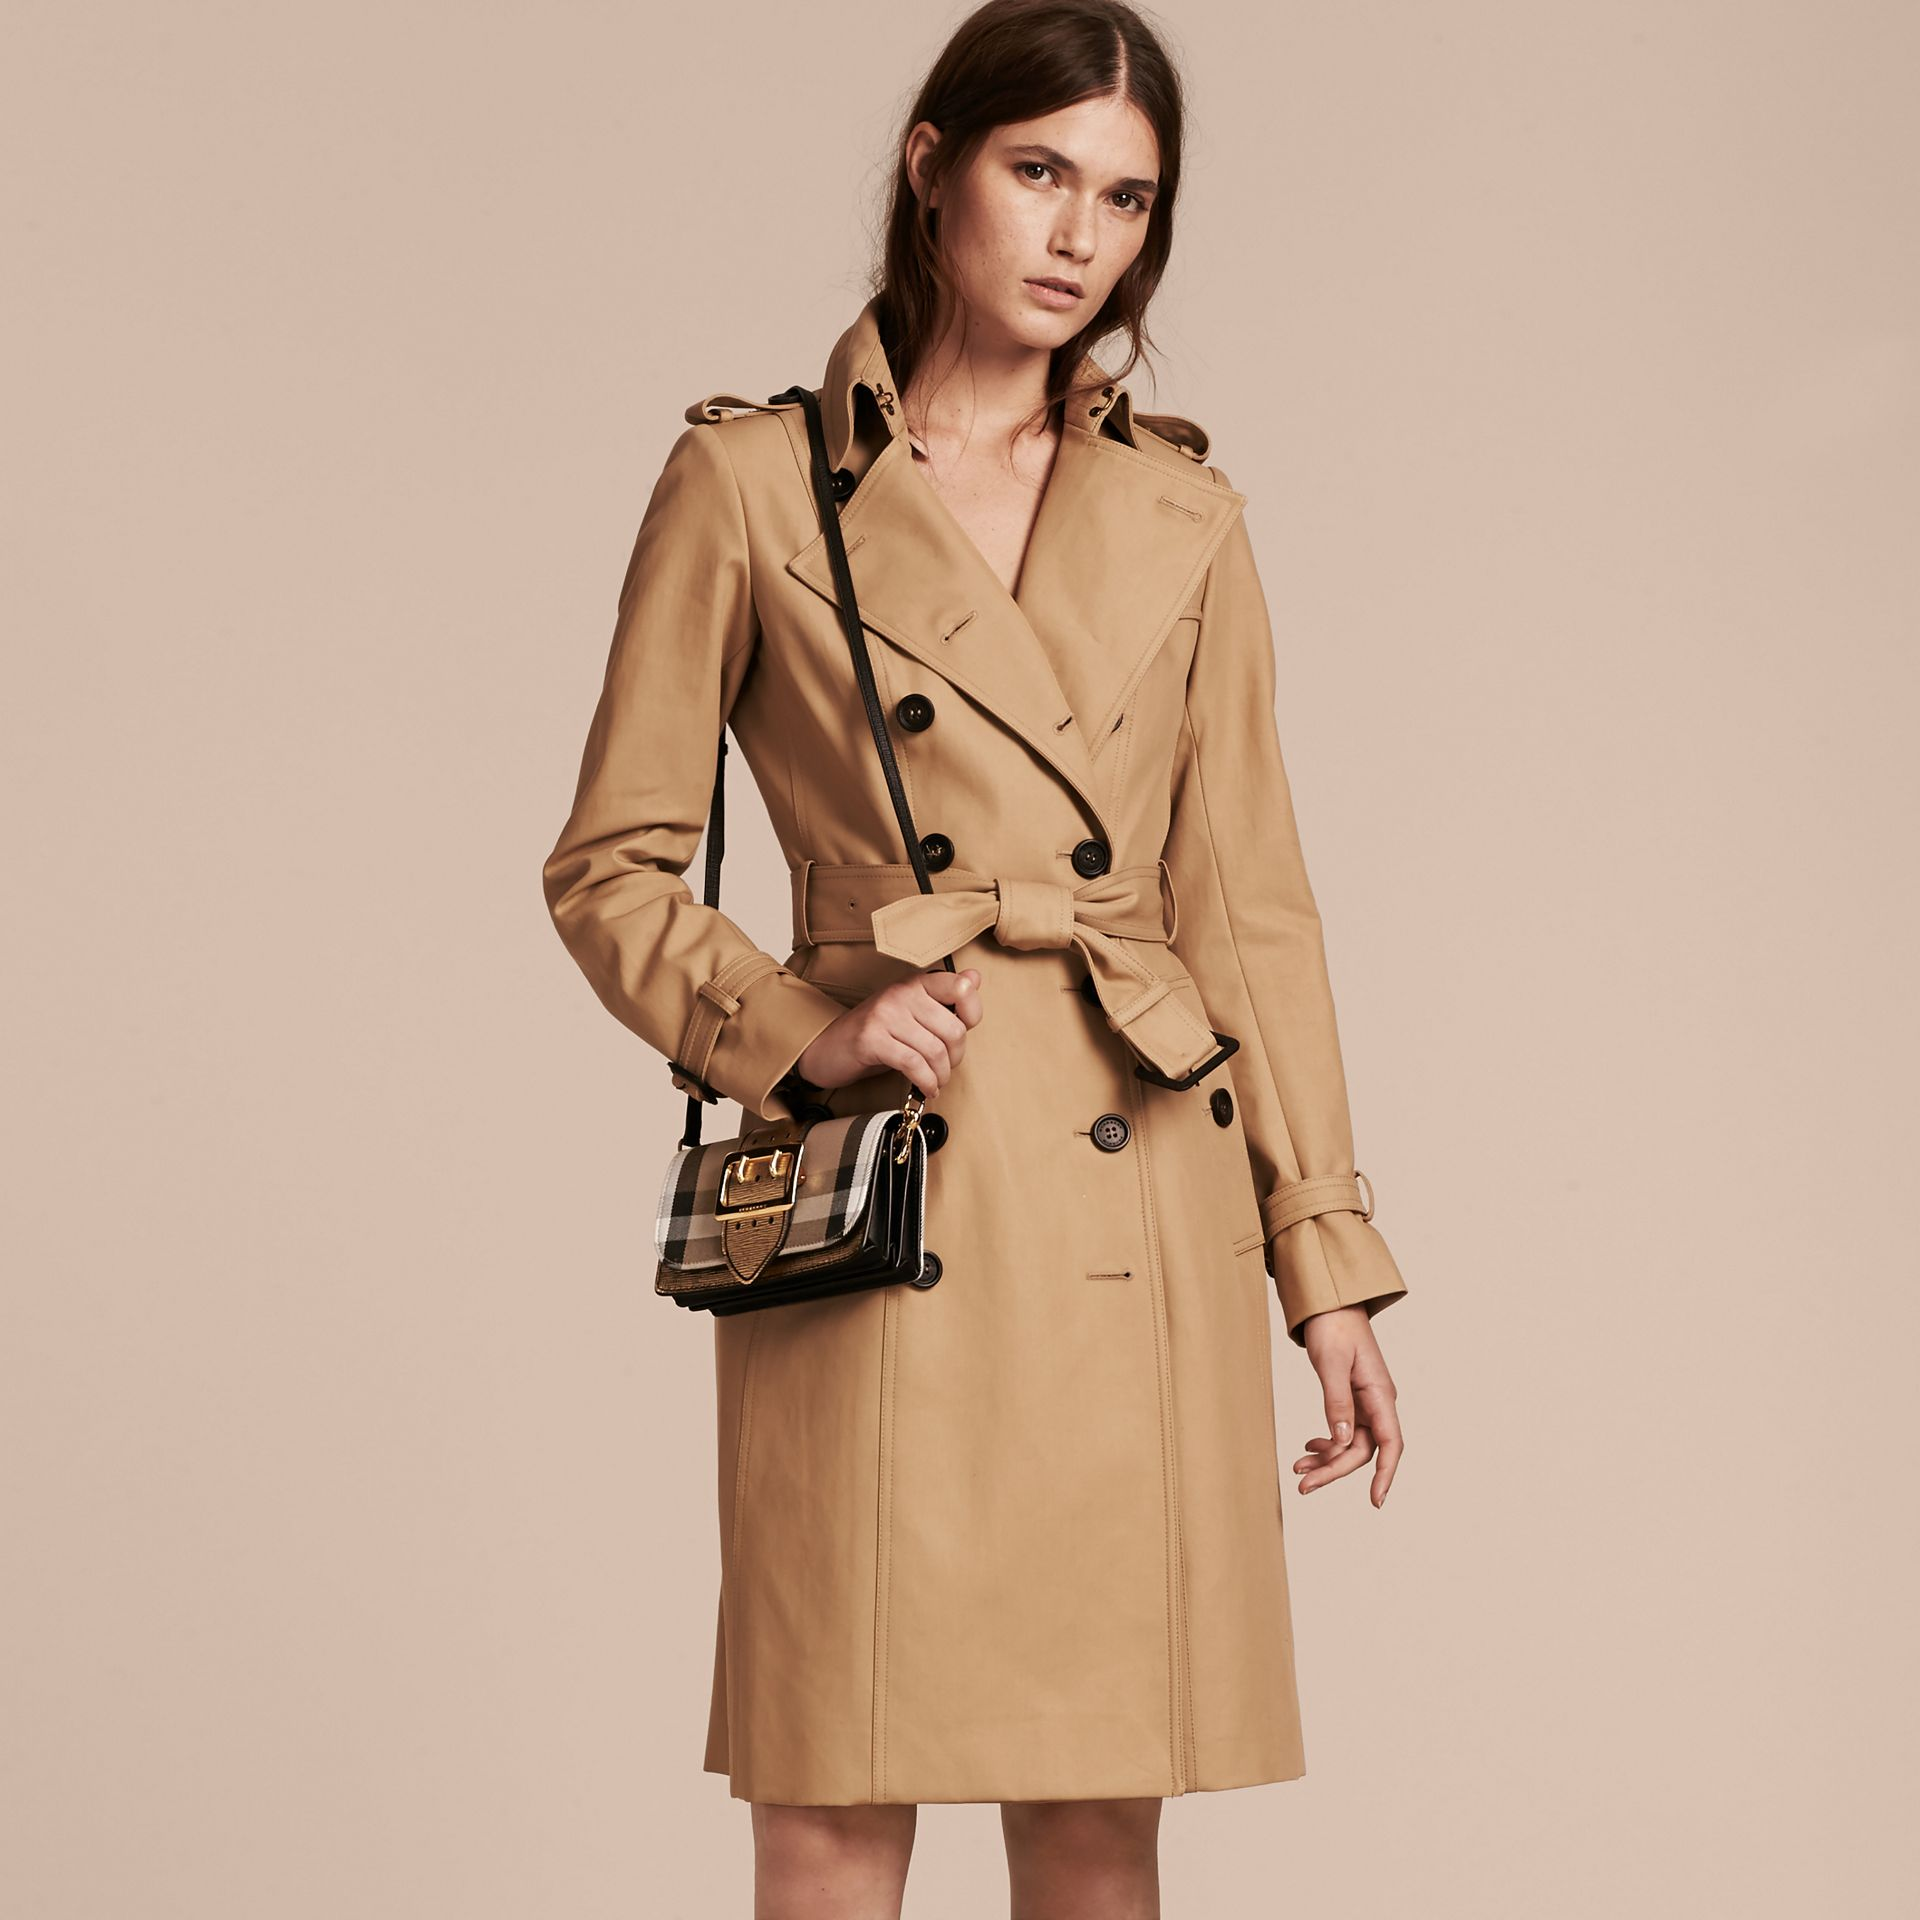 The Small Buckle Bag in House Check and Leather in Gold - Women | Burberry Australia - gallery image 3